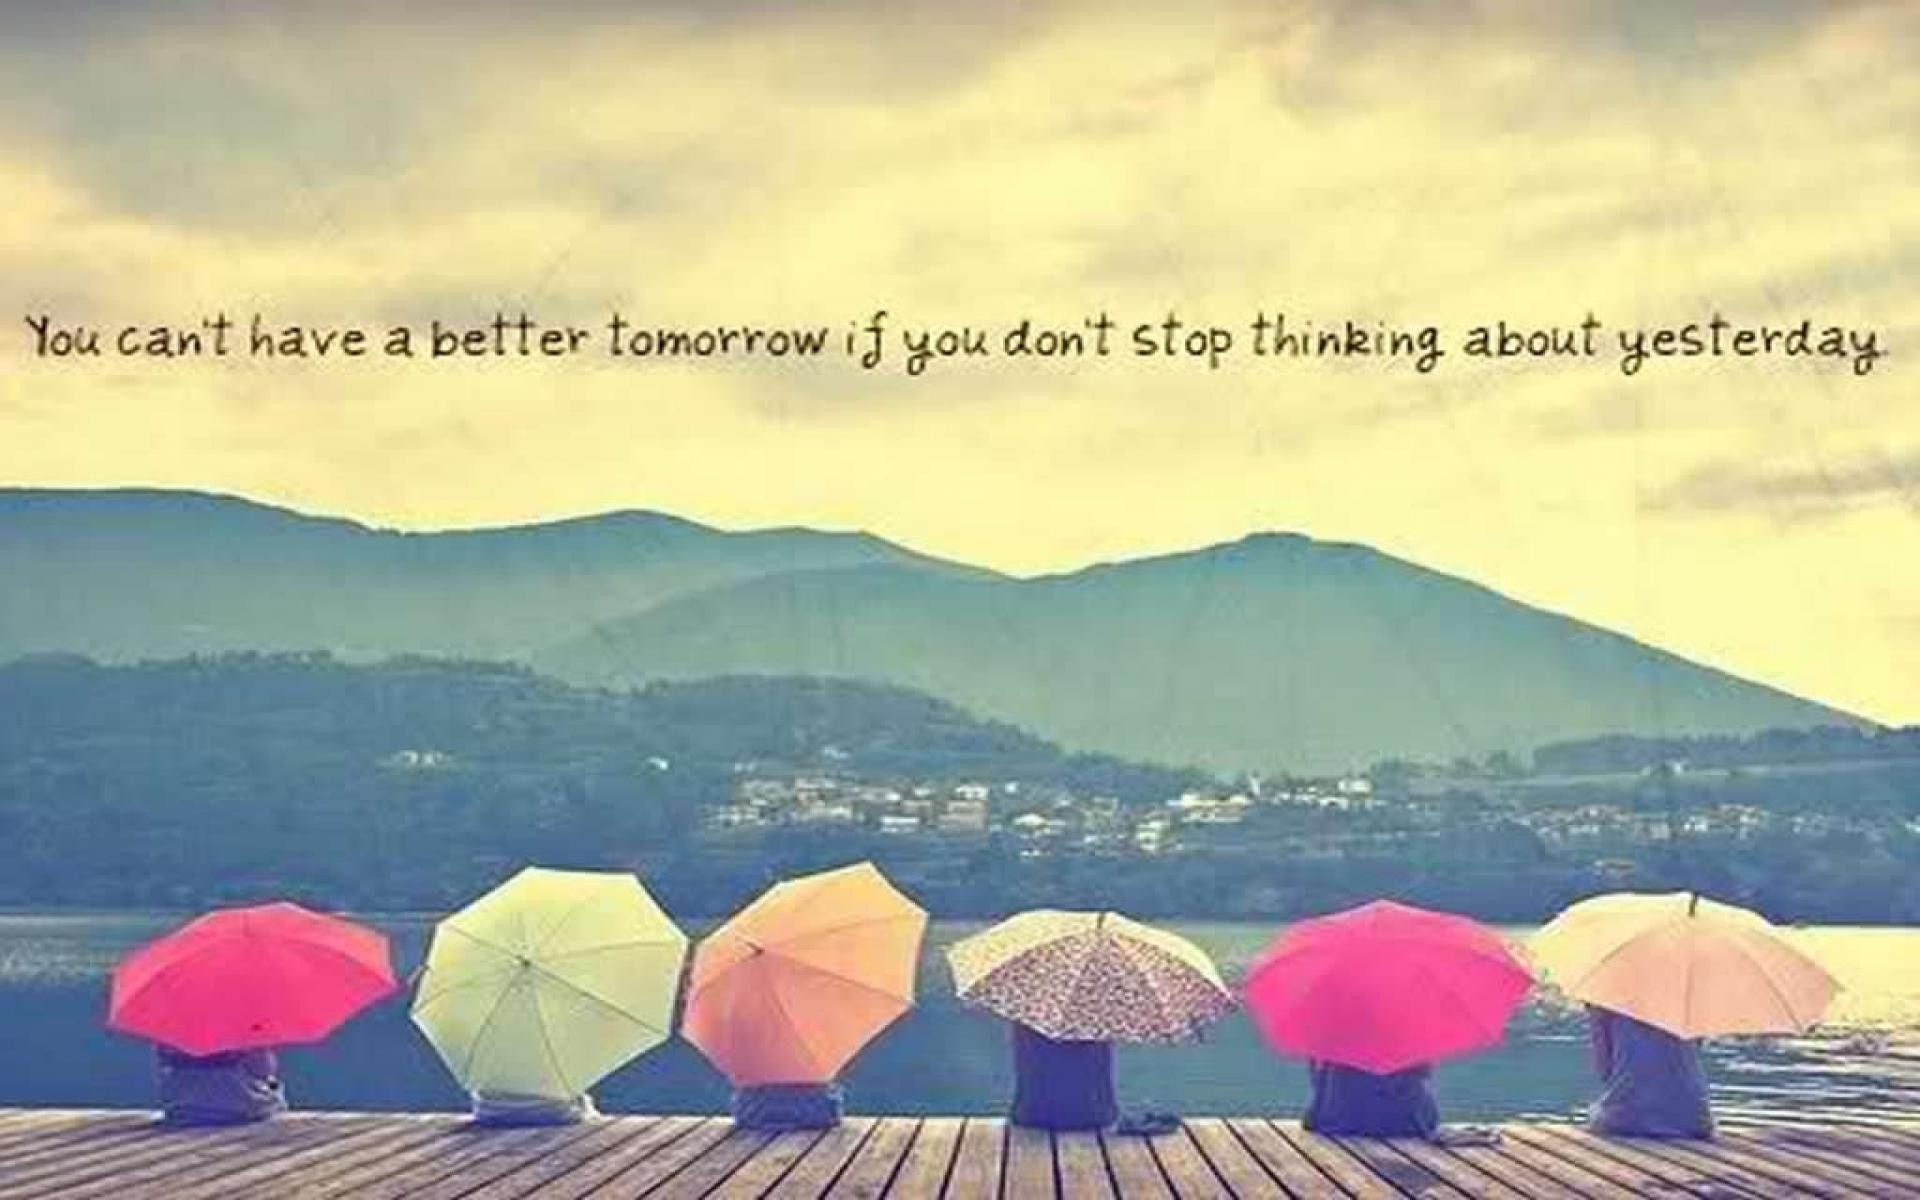 Pretty Wallpapers For Computer Wallpaper Cave Life Quotes Tumblr Tomorrow Will Be Better Encouragement Quotes